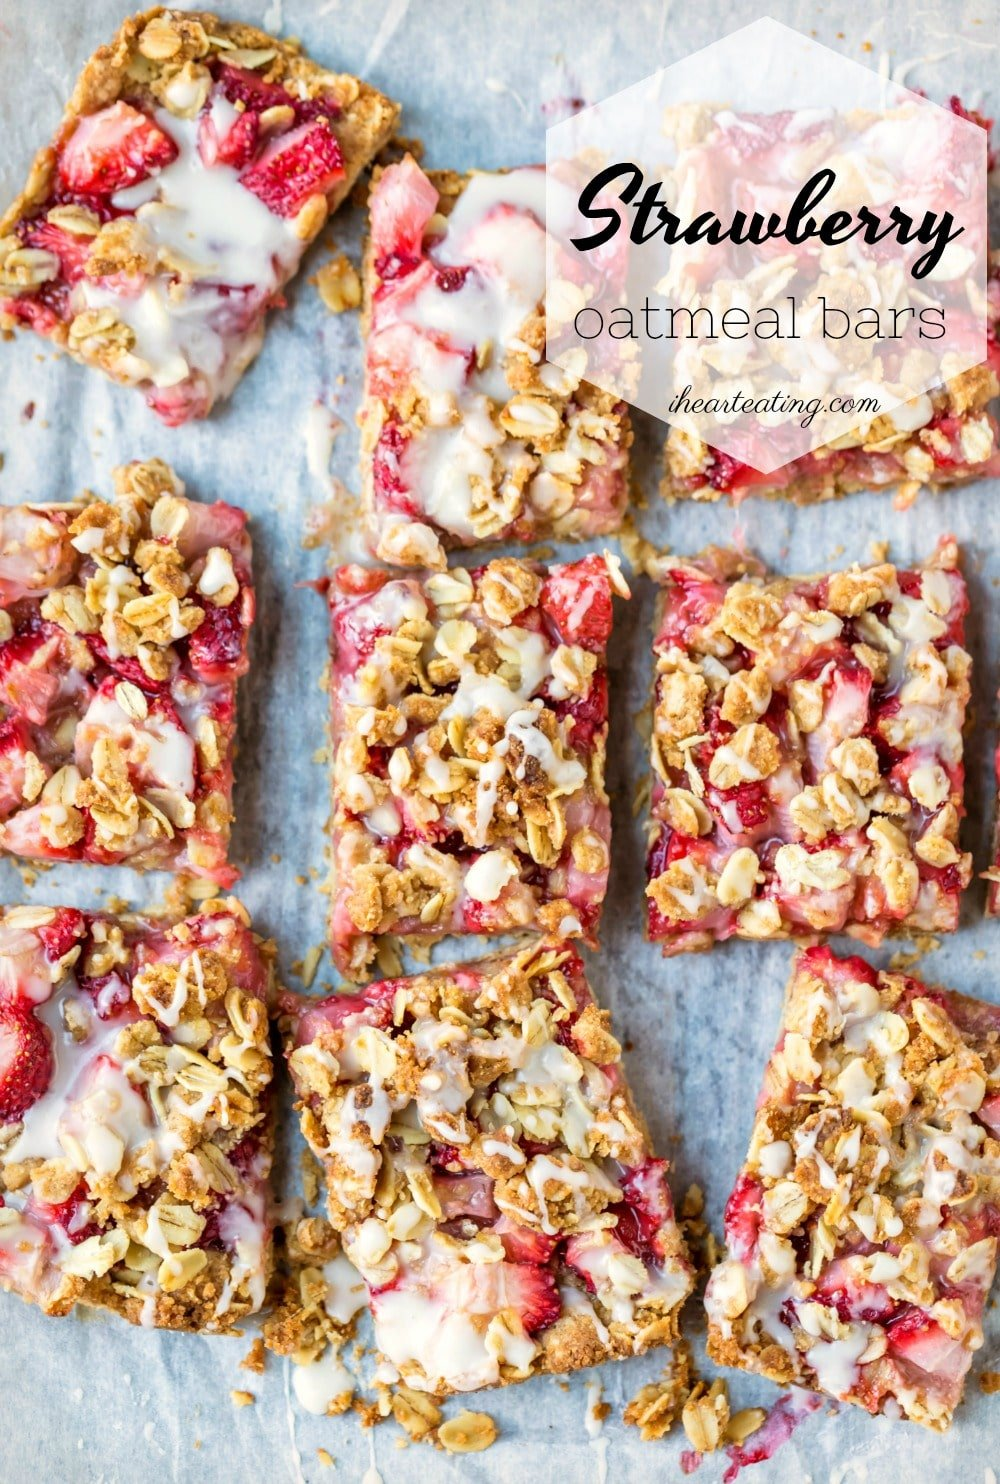 Easy strawberry dessert recipe! These strawberry oatmeal bars have a filling of fresh strawberries sandwiched between oatmeal crumble crust and topping.